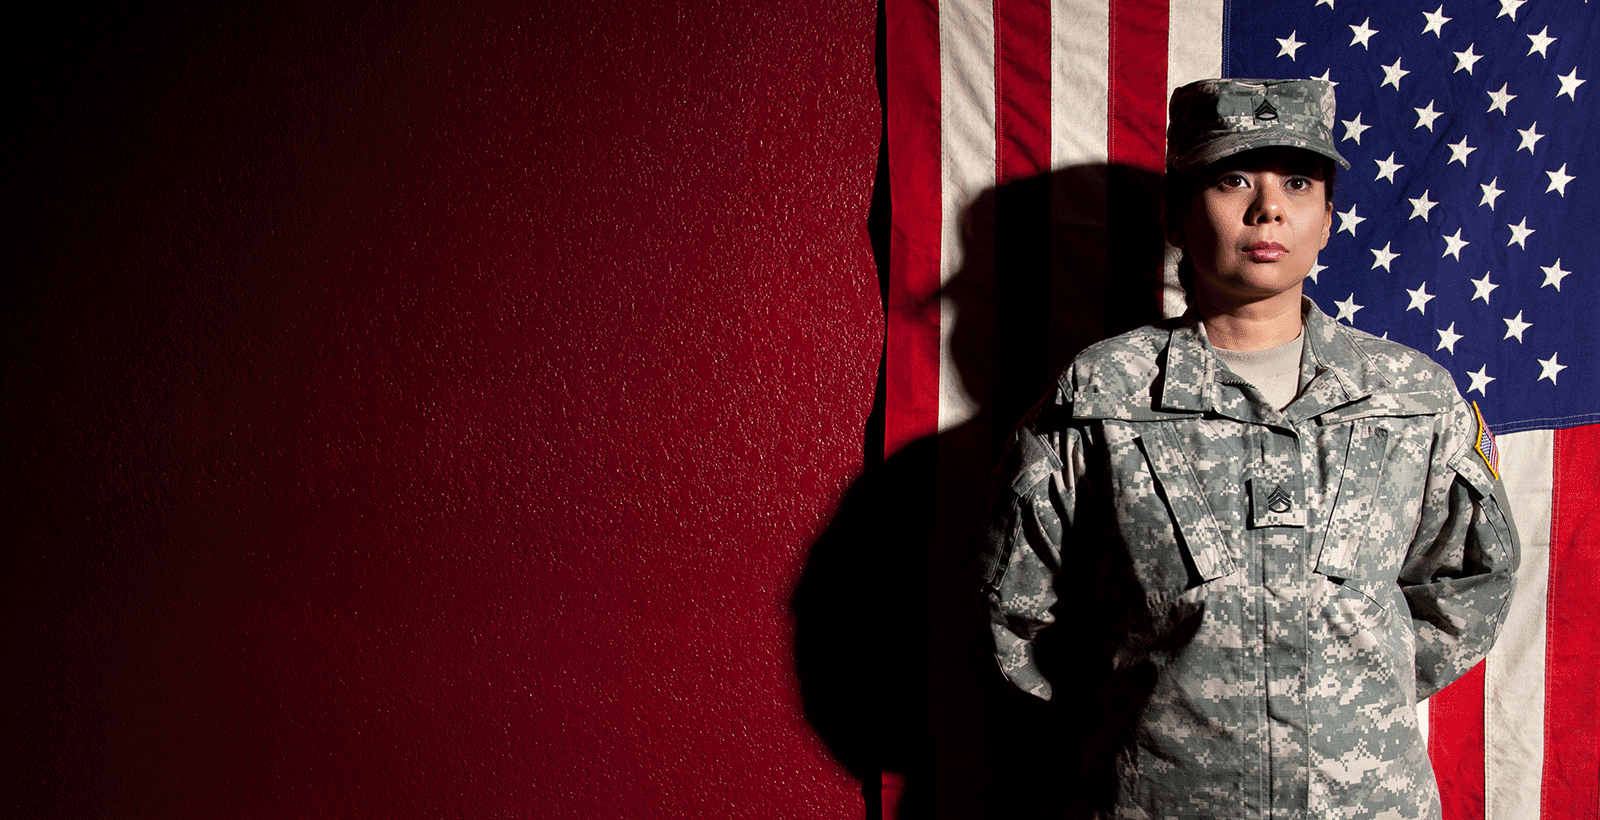 veteran standing in front of american flag